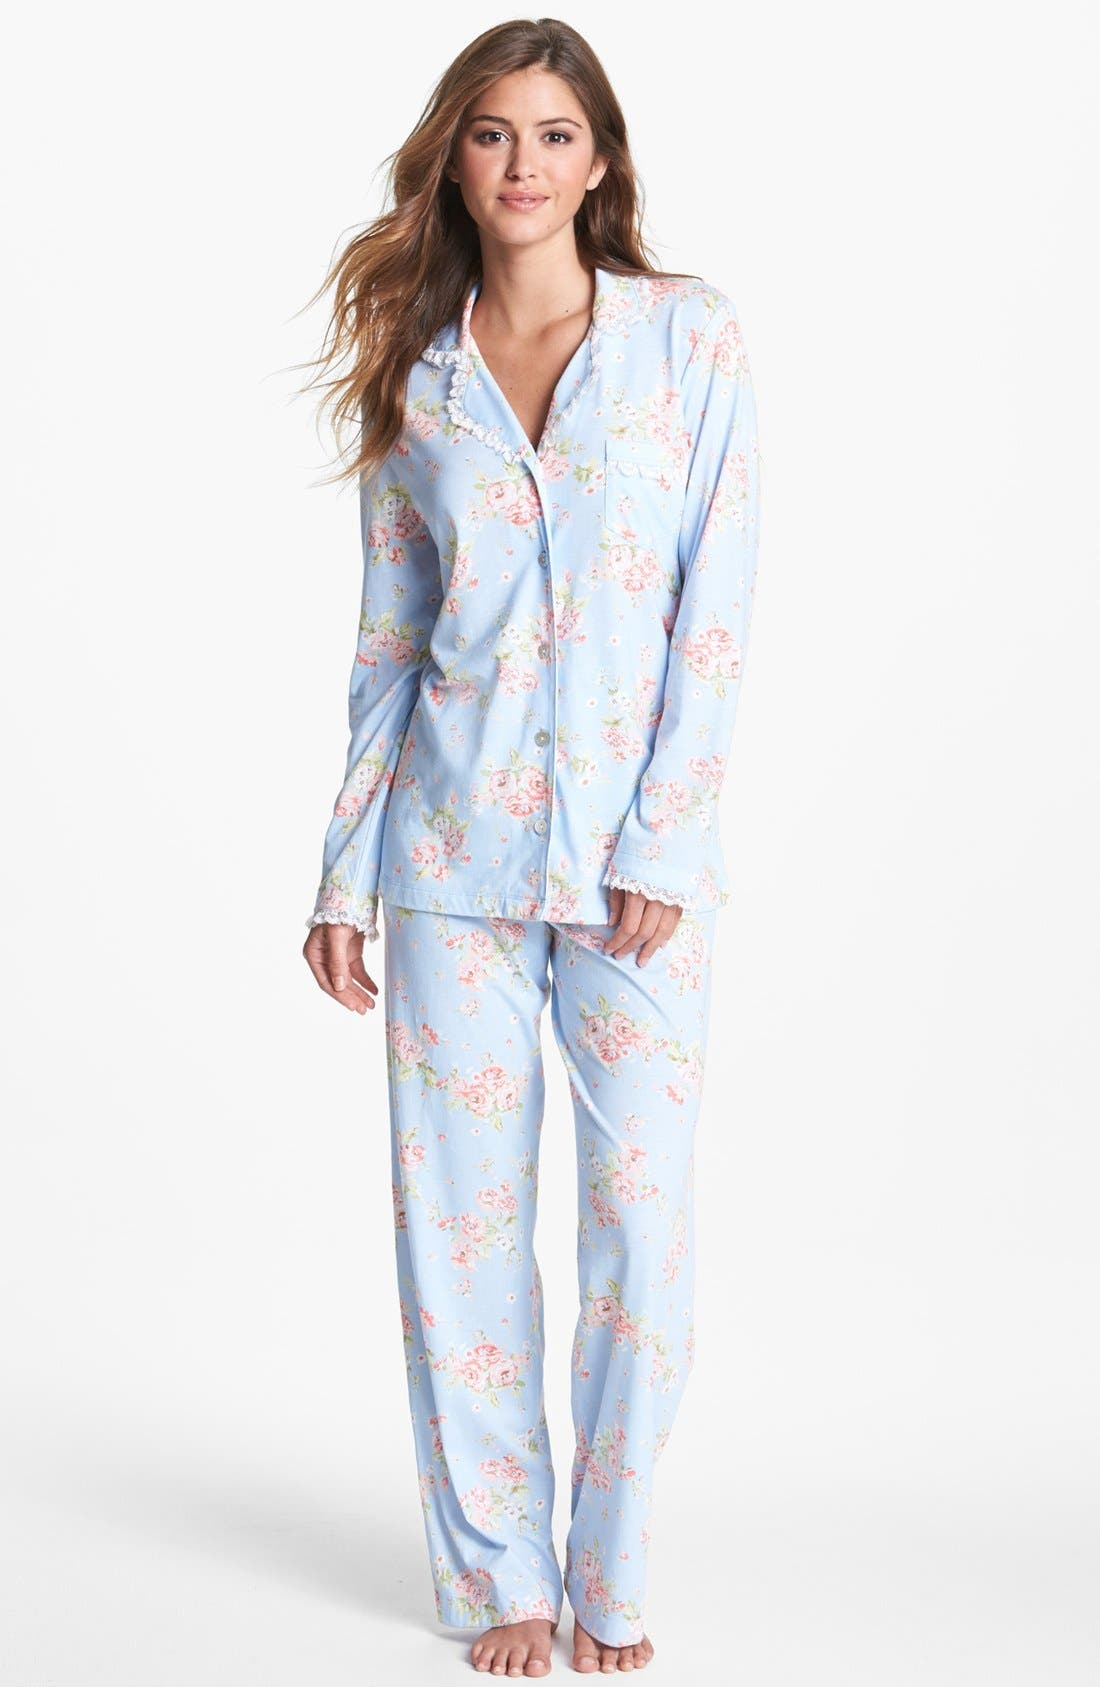 Main Image - Carole Hochman Designs 'Enchanted Gardens' Pajamas